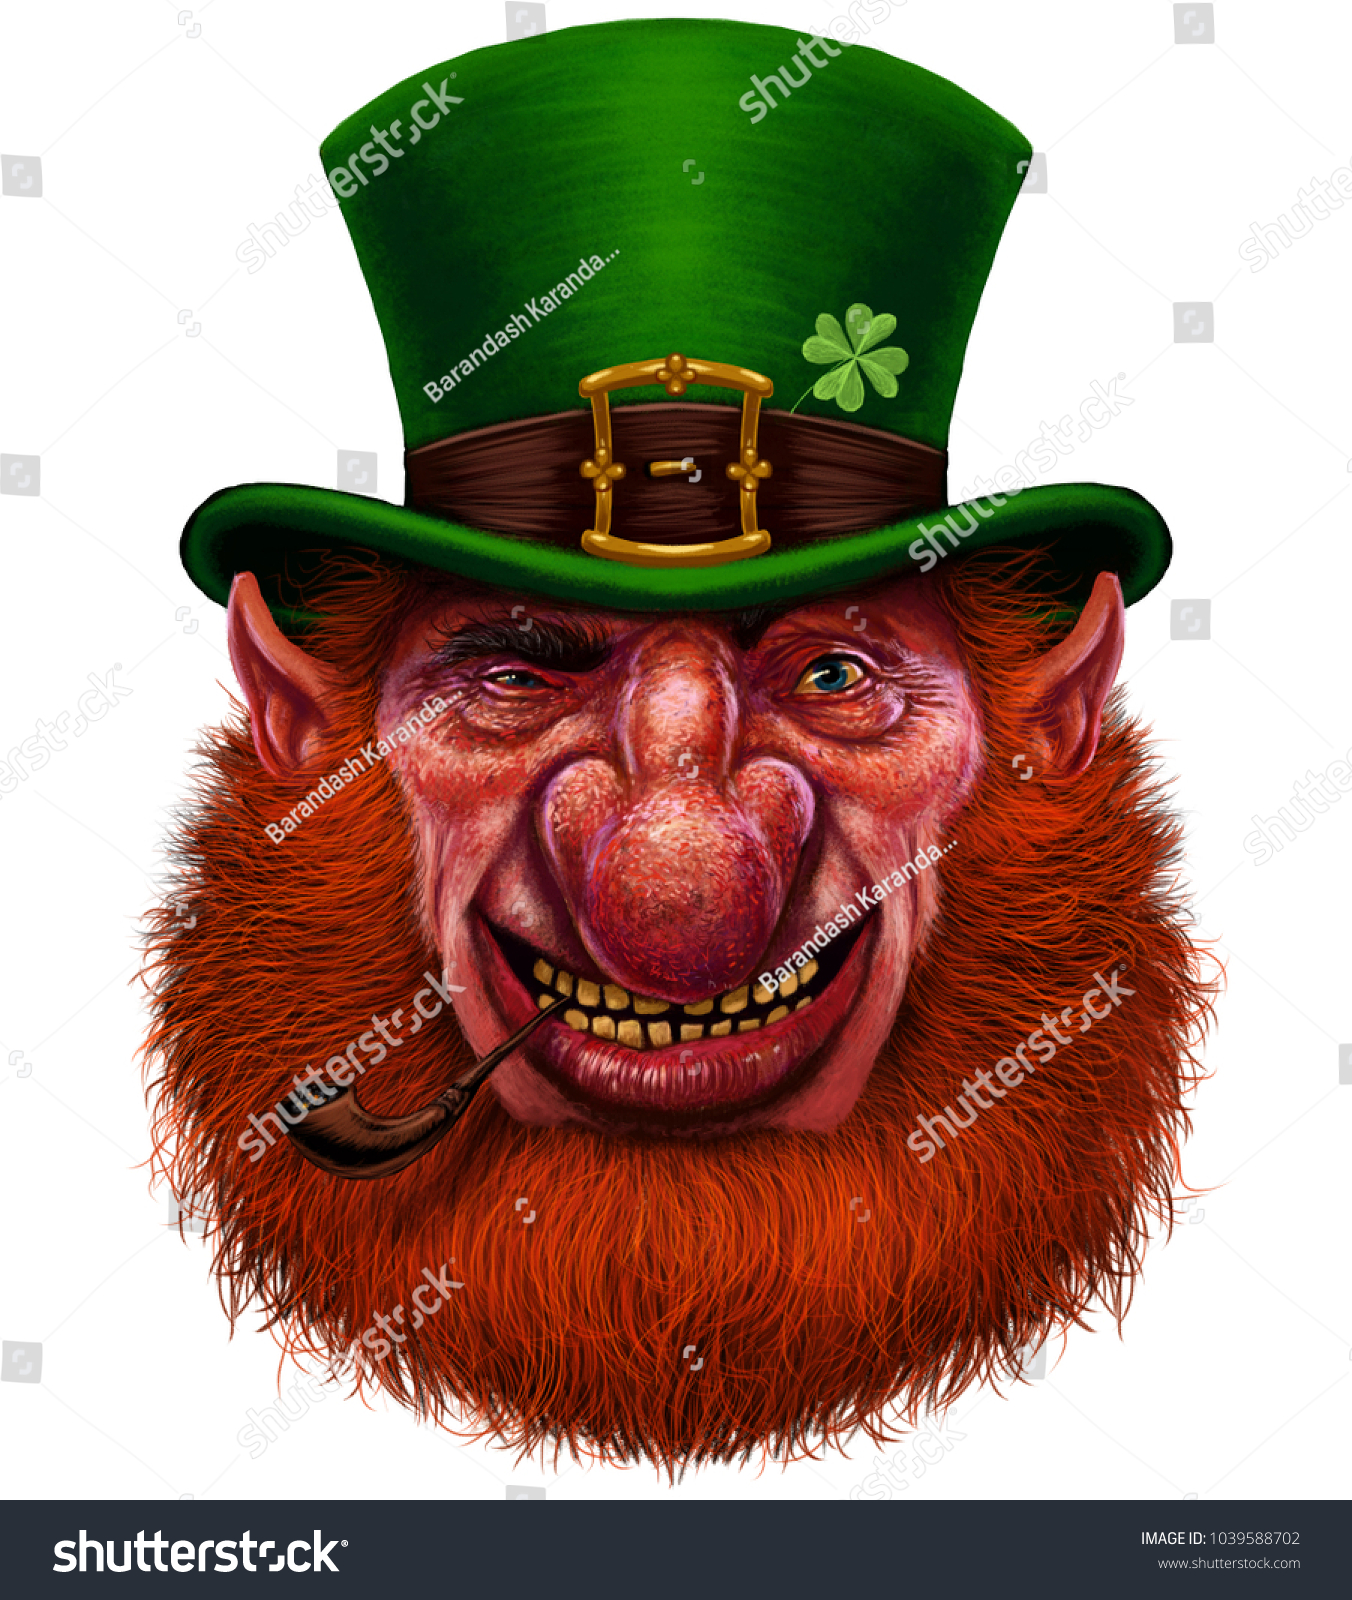 Leprechaun St Patricks Day Irish Holiday Stockillustration ...